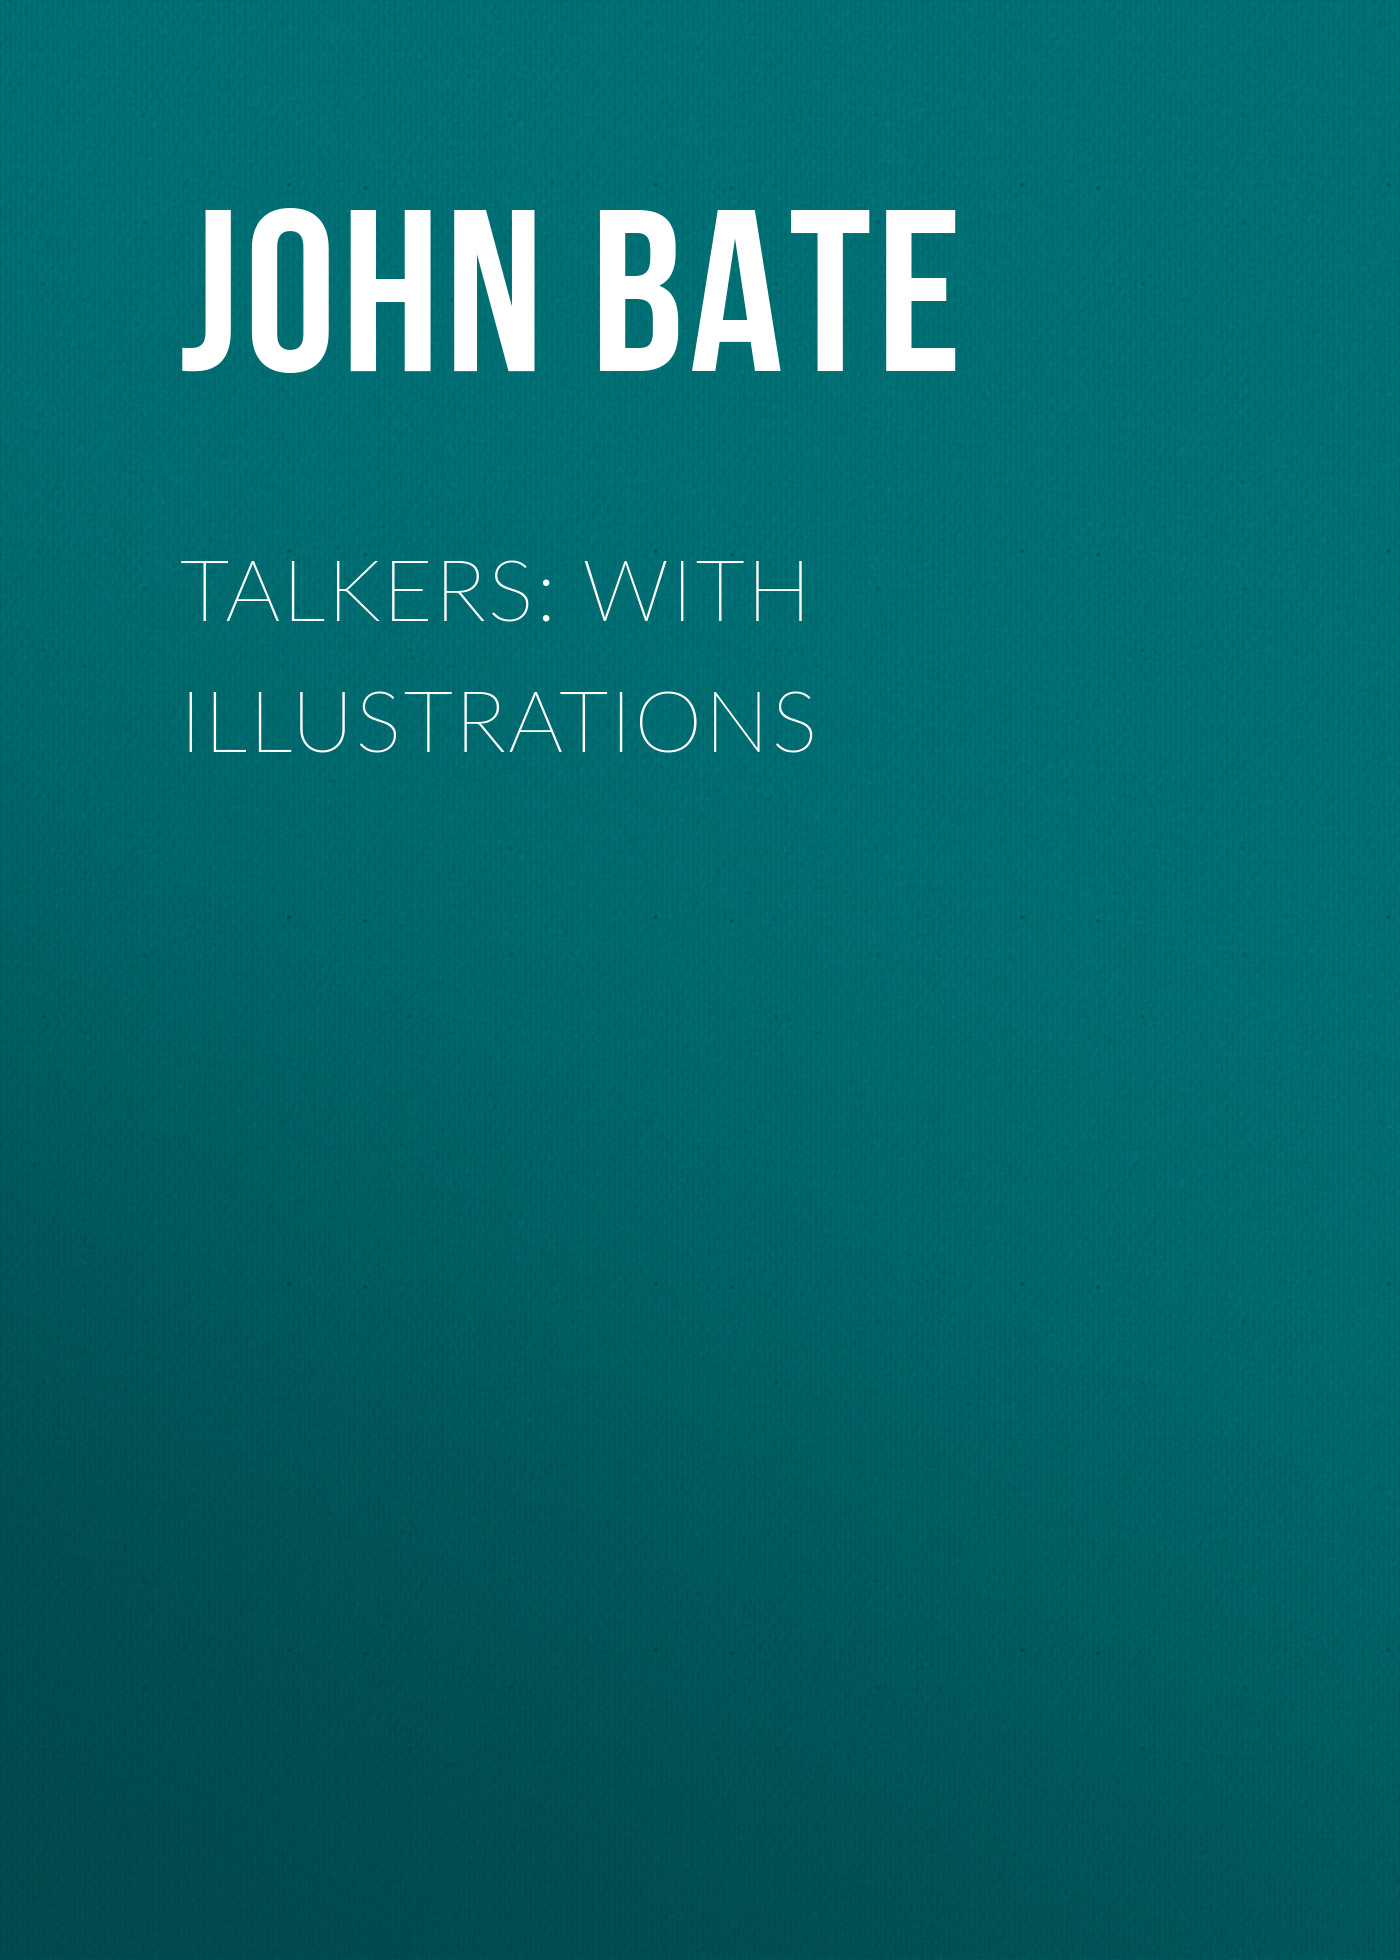 John Bate Talkers: With Illustrations sp lamp 067 compatible lamp bulb with housing for infocus in5502 in5504 in5532 in5533 in5534 in5535 projectors happy bate